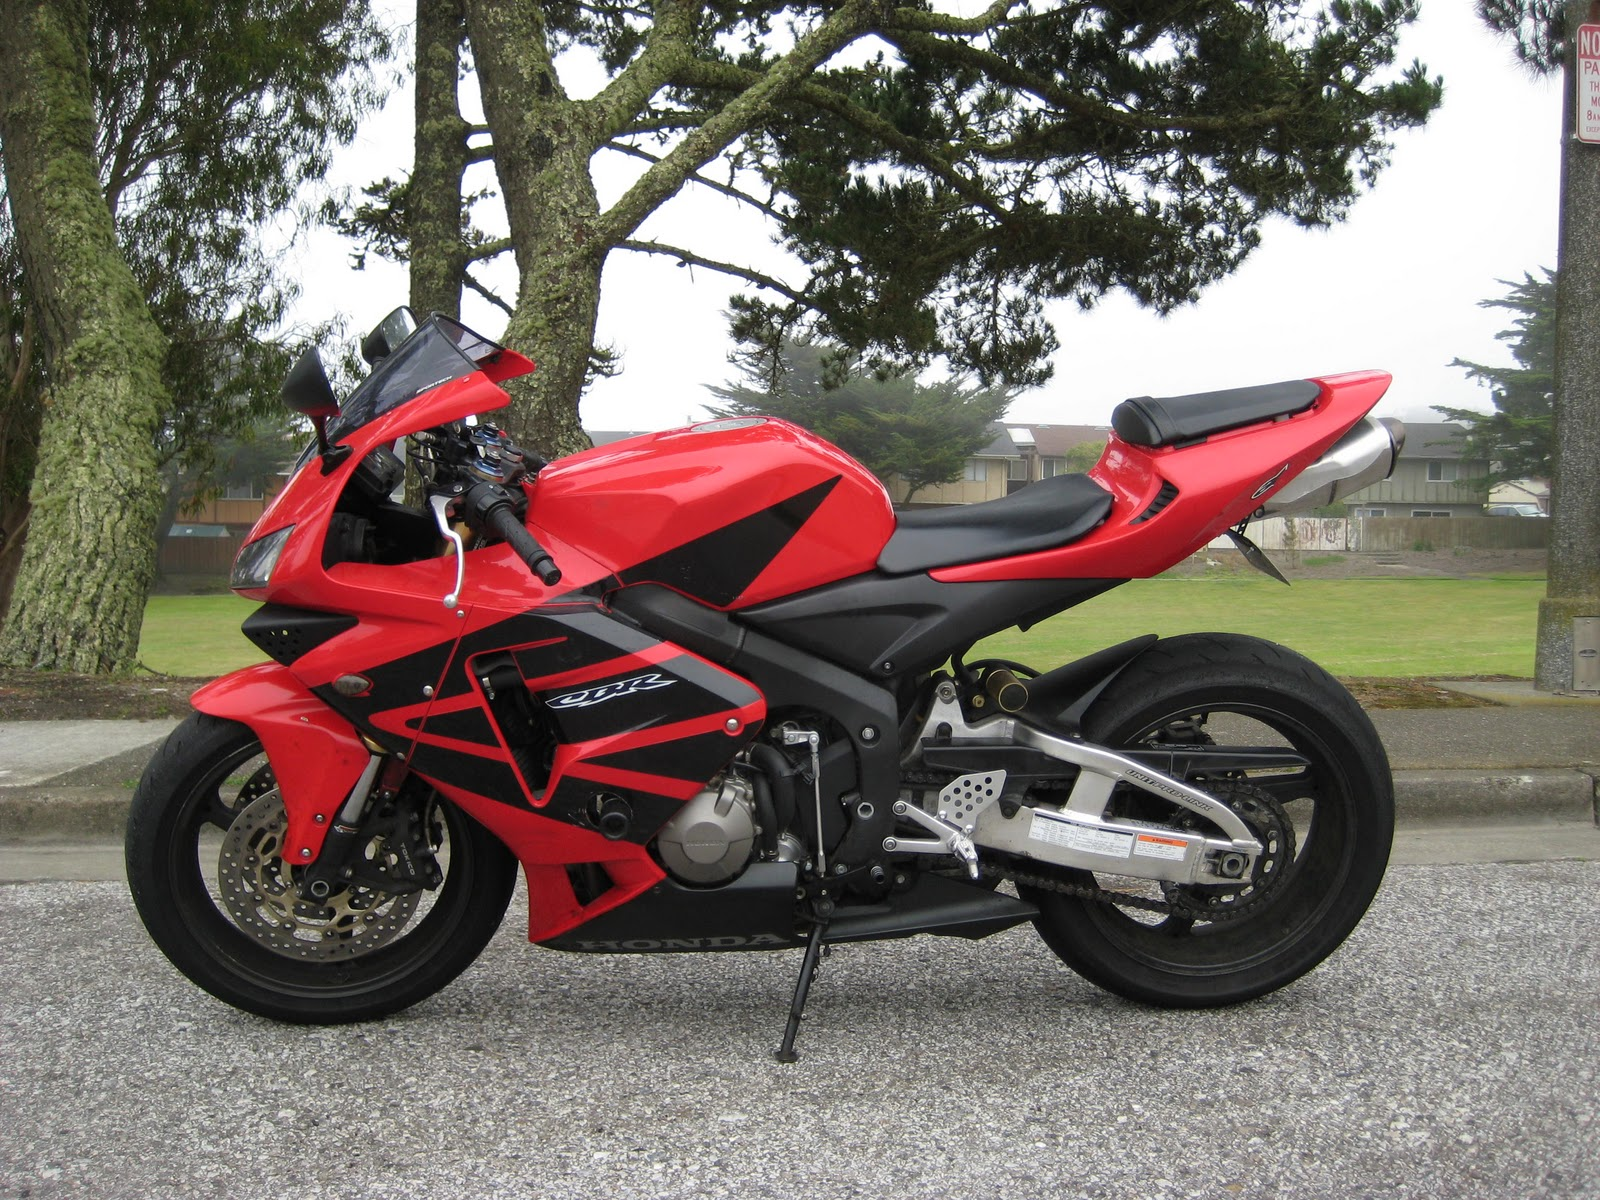 Monsterbiker01 2005 Honda Cbr600rr